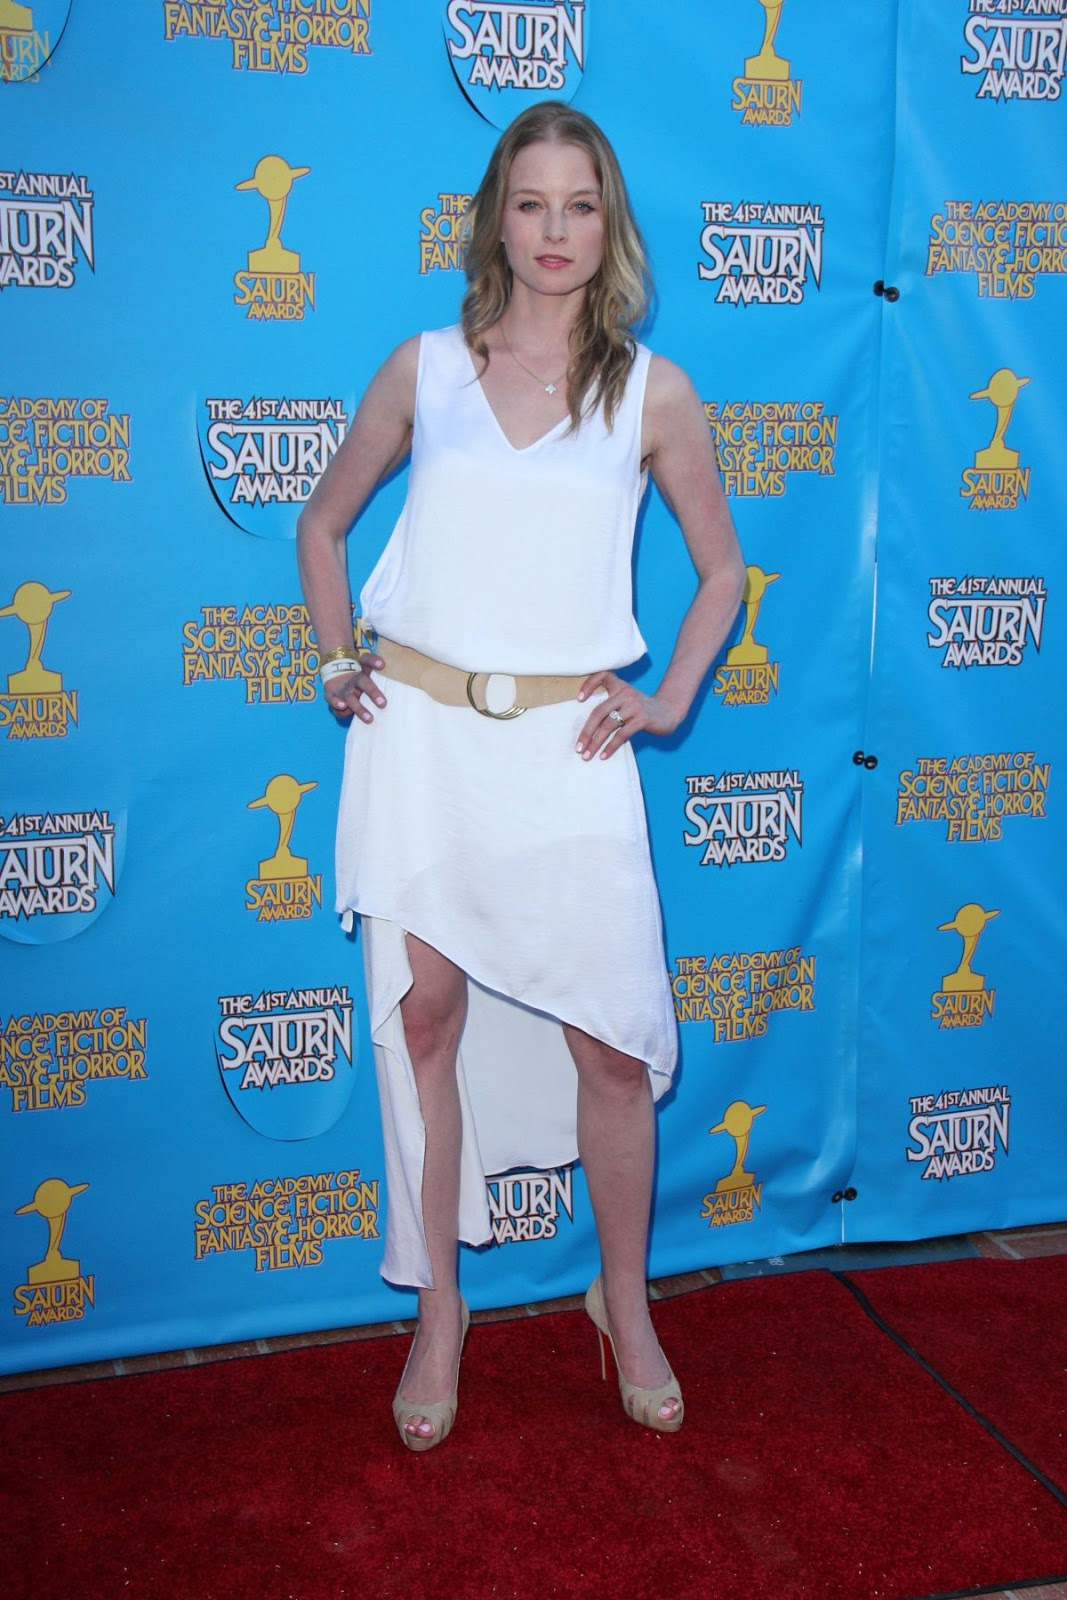 Pandemic actress Rachel Nichols at the The 41st Annual Saturn Awards in Burbank